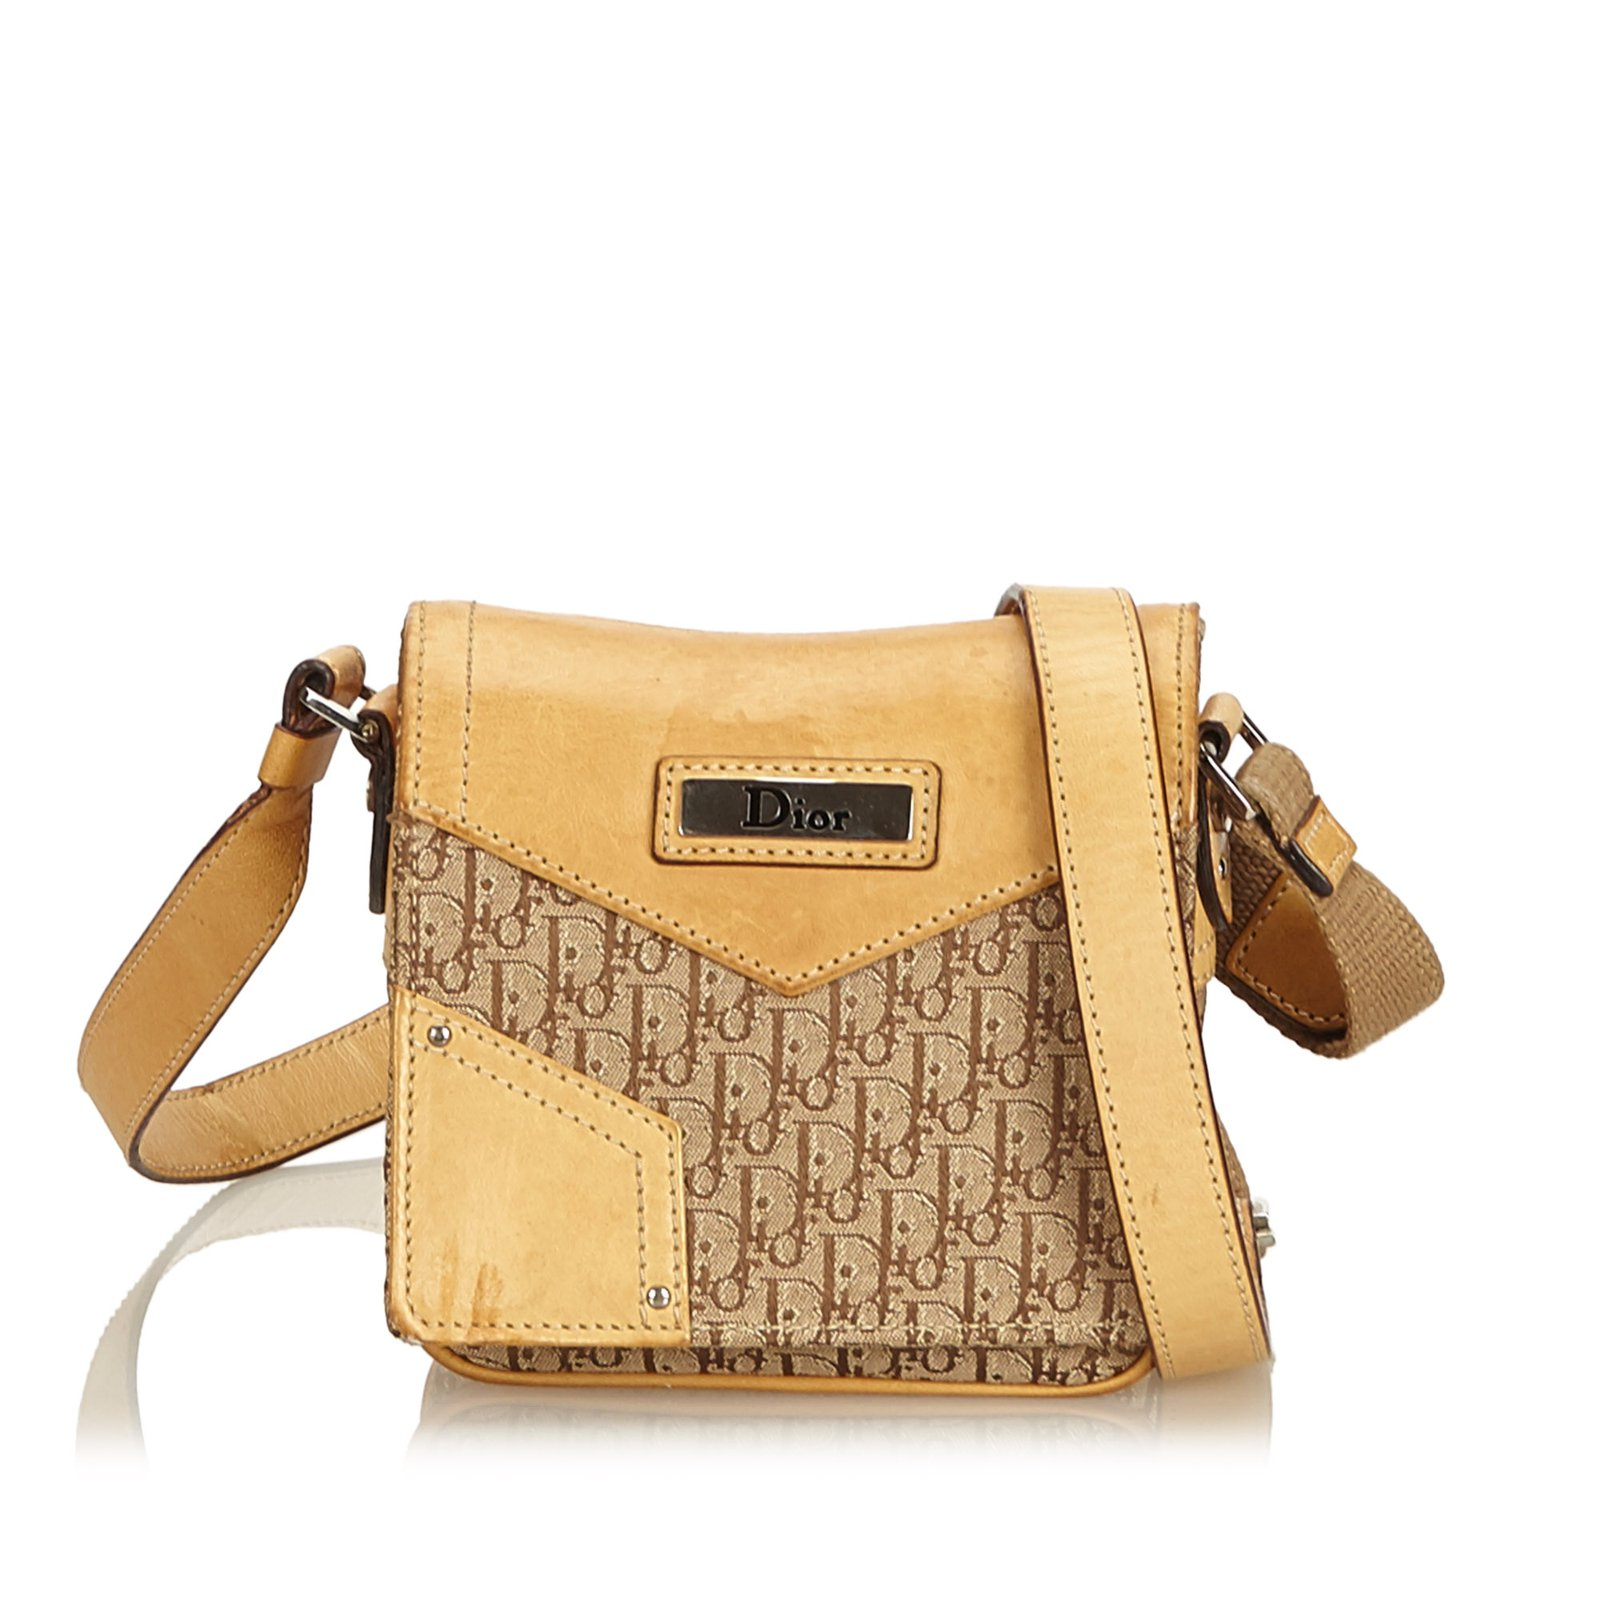 866684591 Dior Oblique Canvas Crossbody Bag Handbags Leather,Other,Cloth,Cloth Brown ,Beige